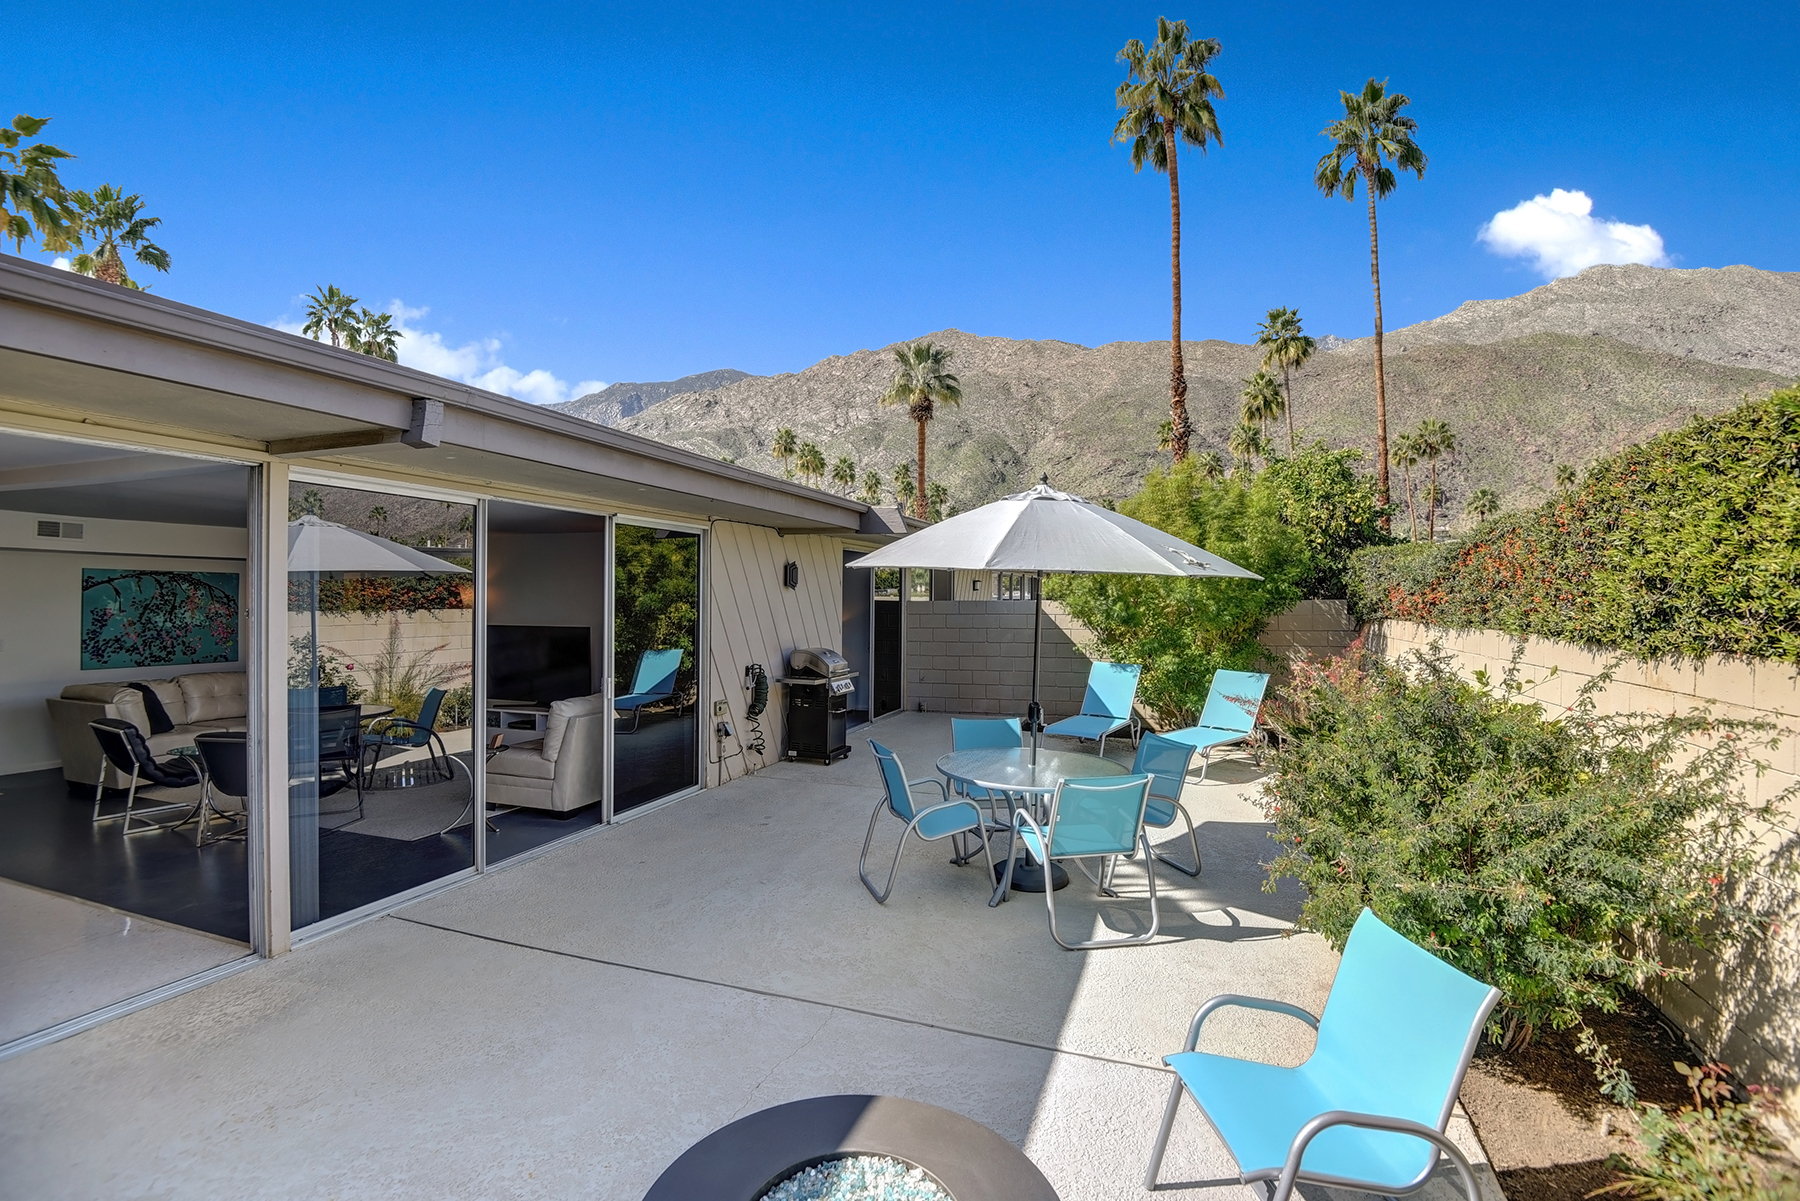 Condo in Palm Springs